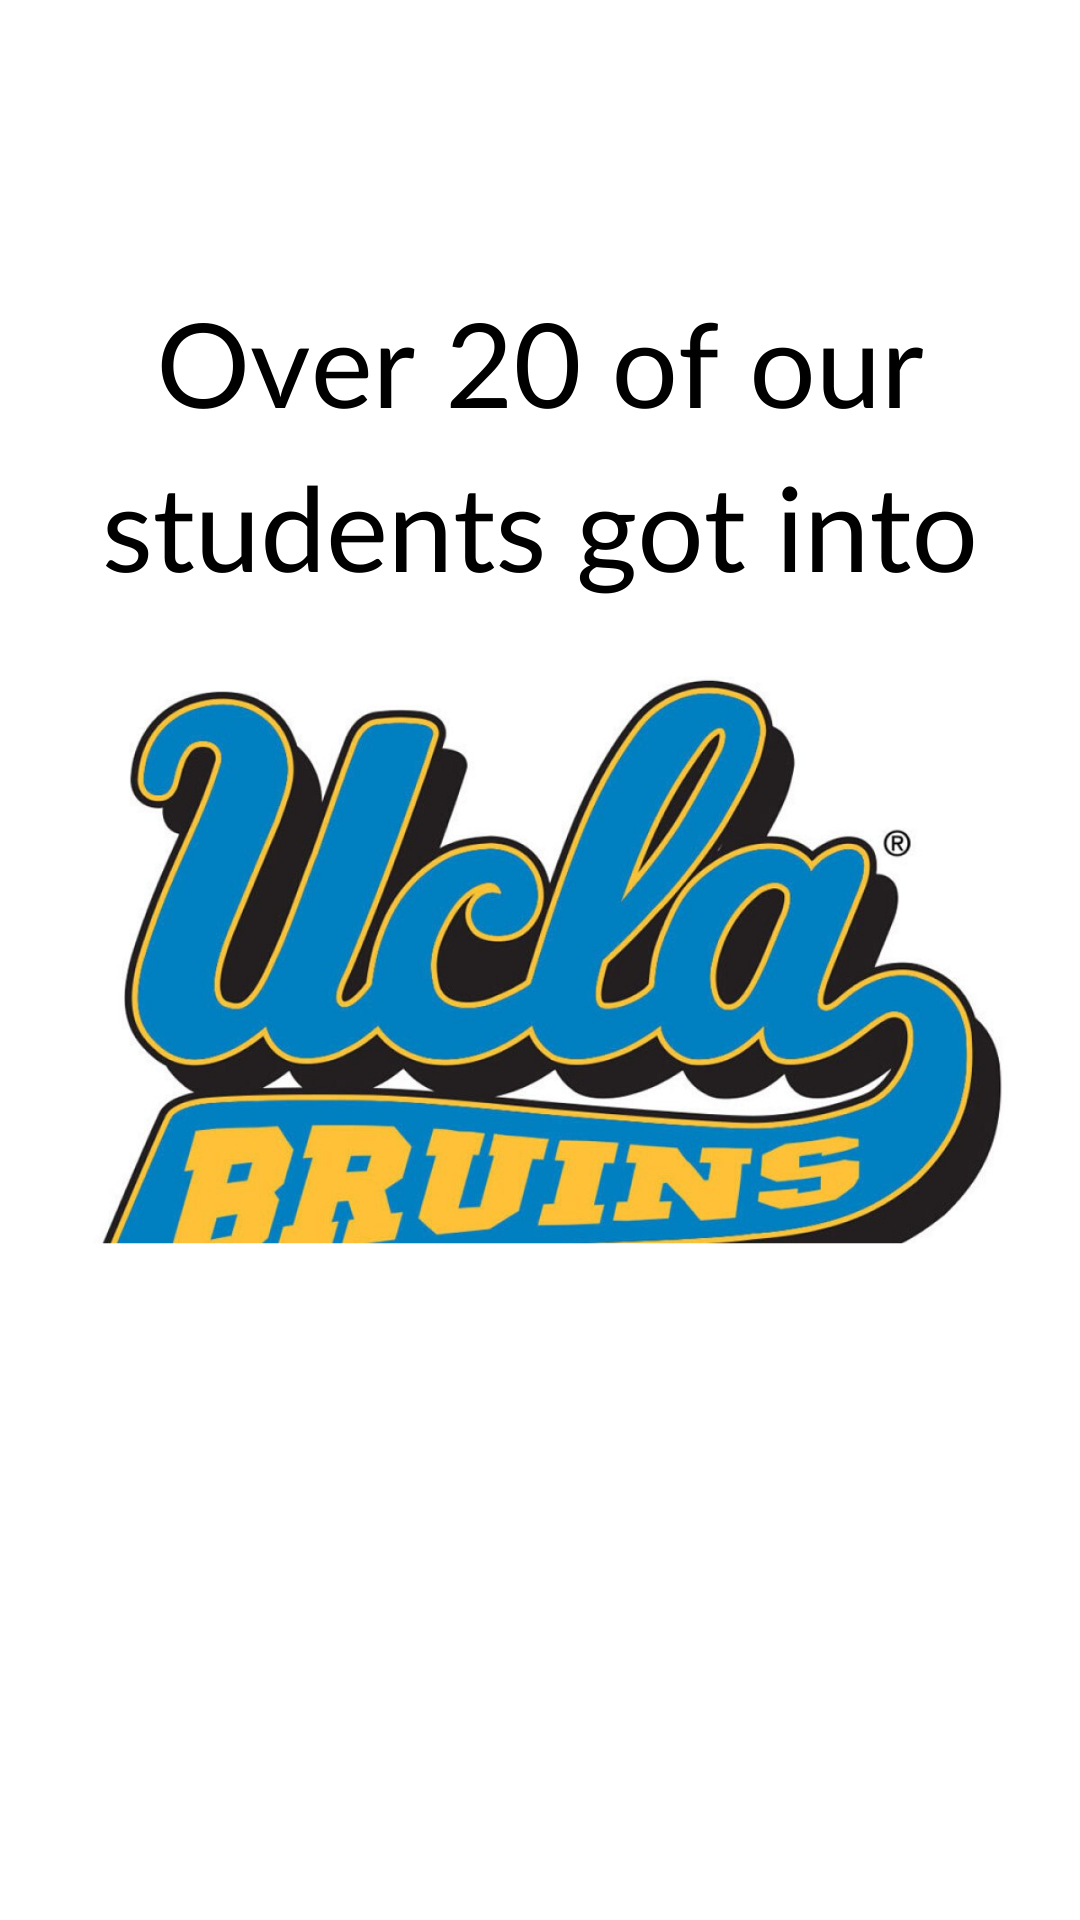 f8fa58887622759af6fa21fc87034636 - Ucla Early Action Application Deadline